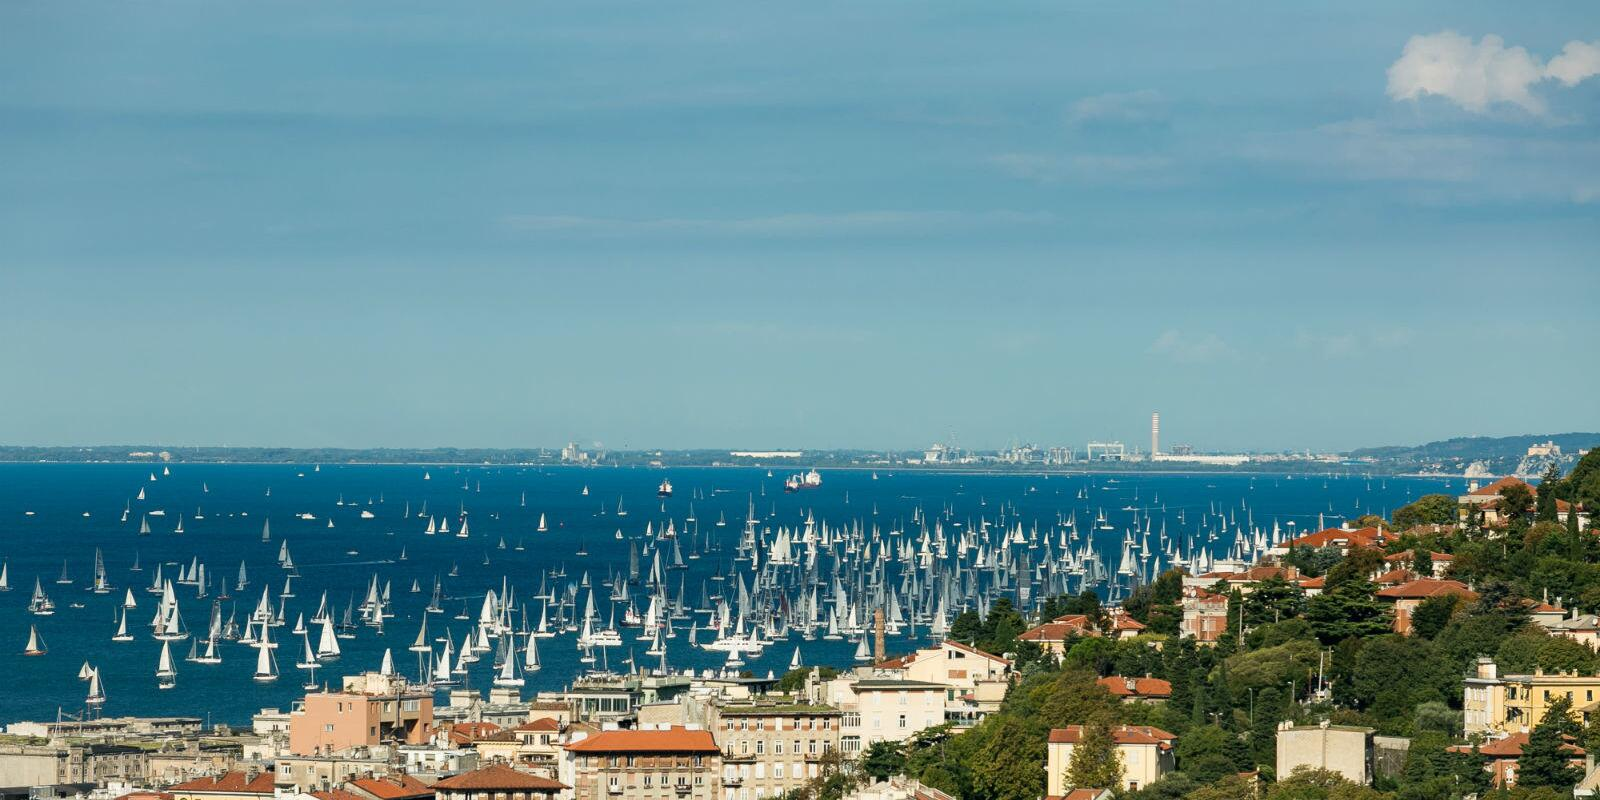 Experience the Barcolana and discover Trieste